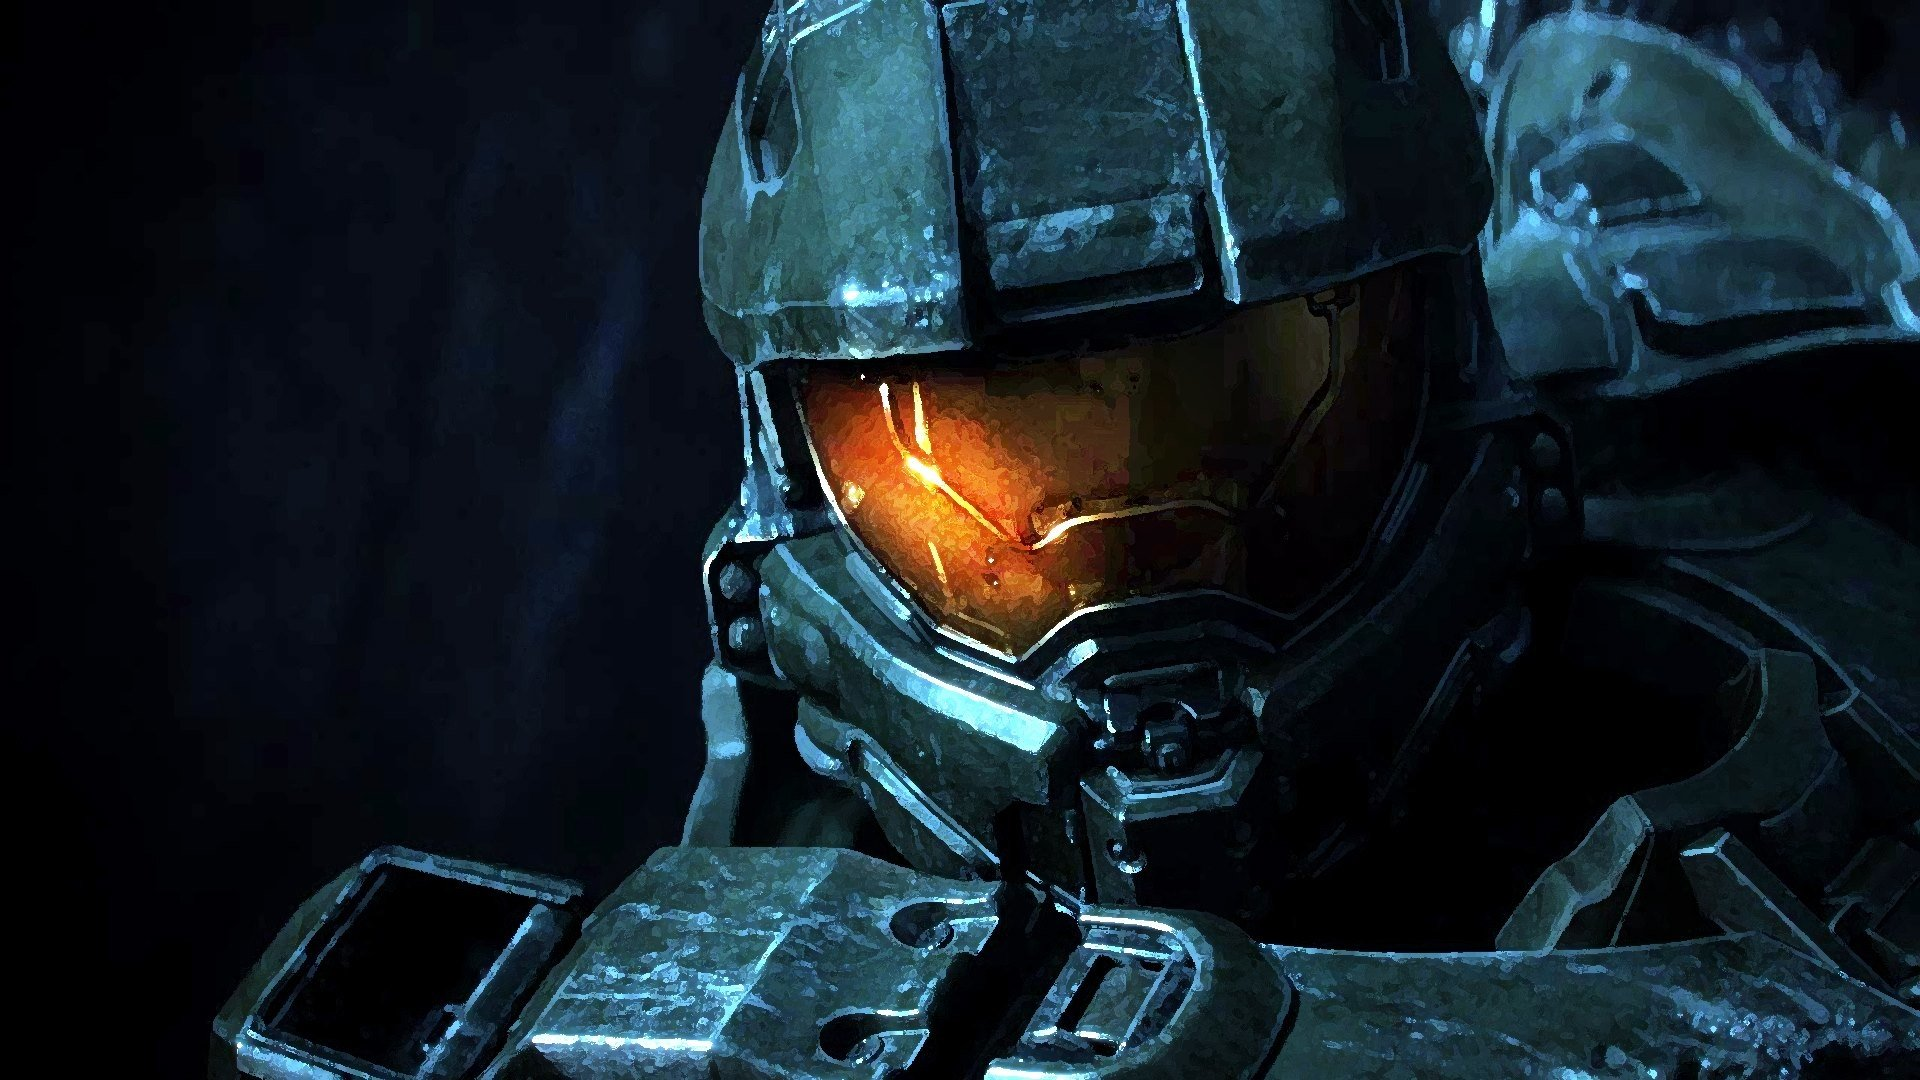 86 halo 4 hd wallpapers background images wallpaper abyss page 3 hd wallpaper background image id373868 1920x1080 video game halo 4 voltagebd Images